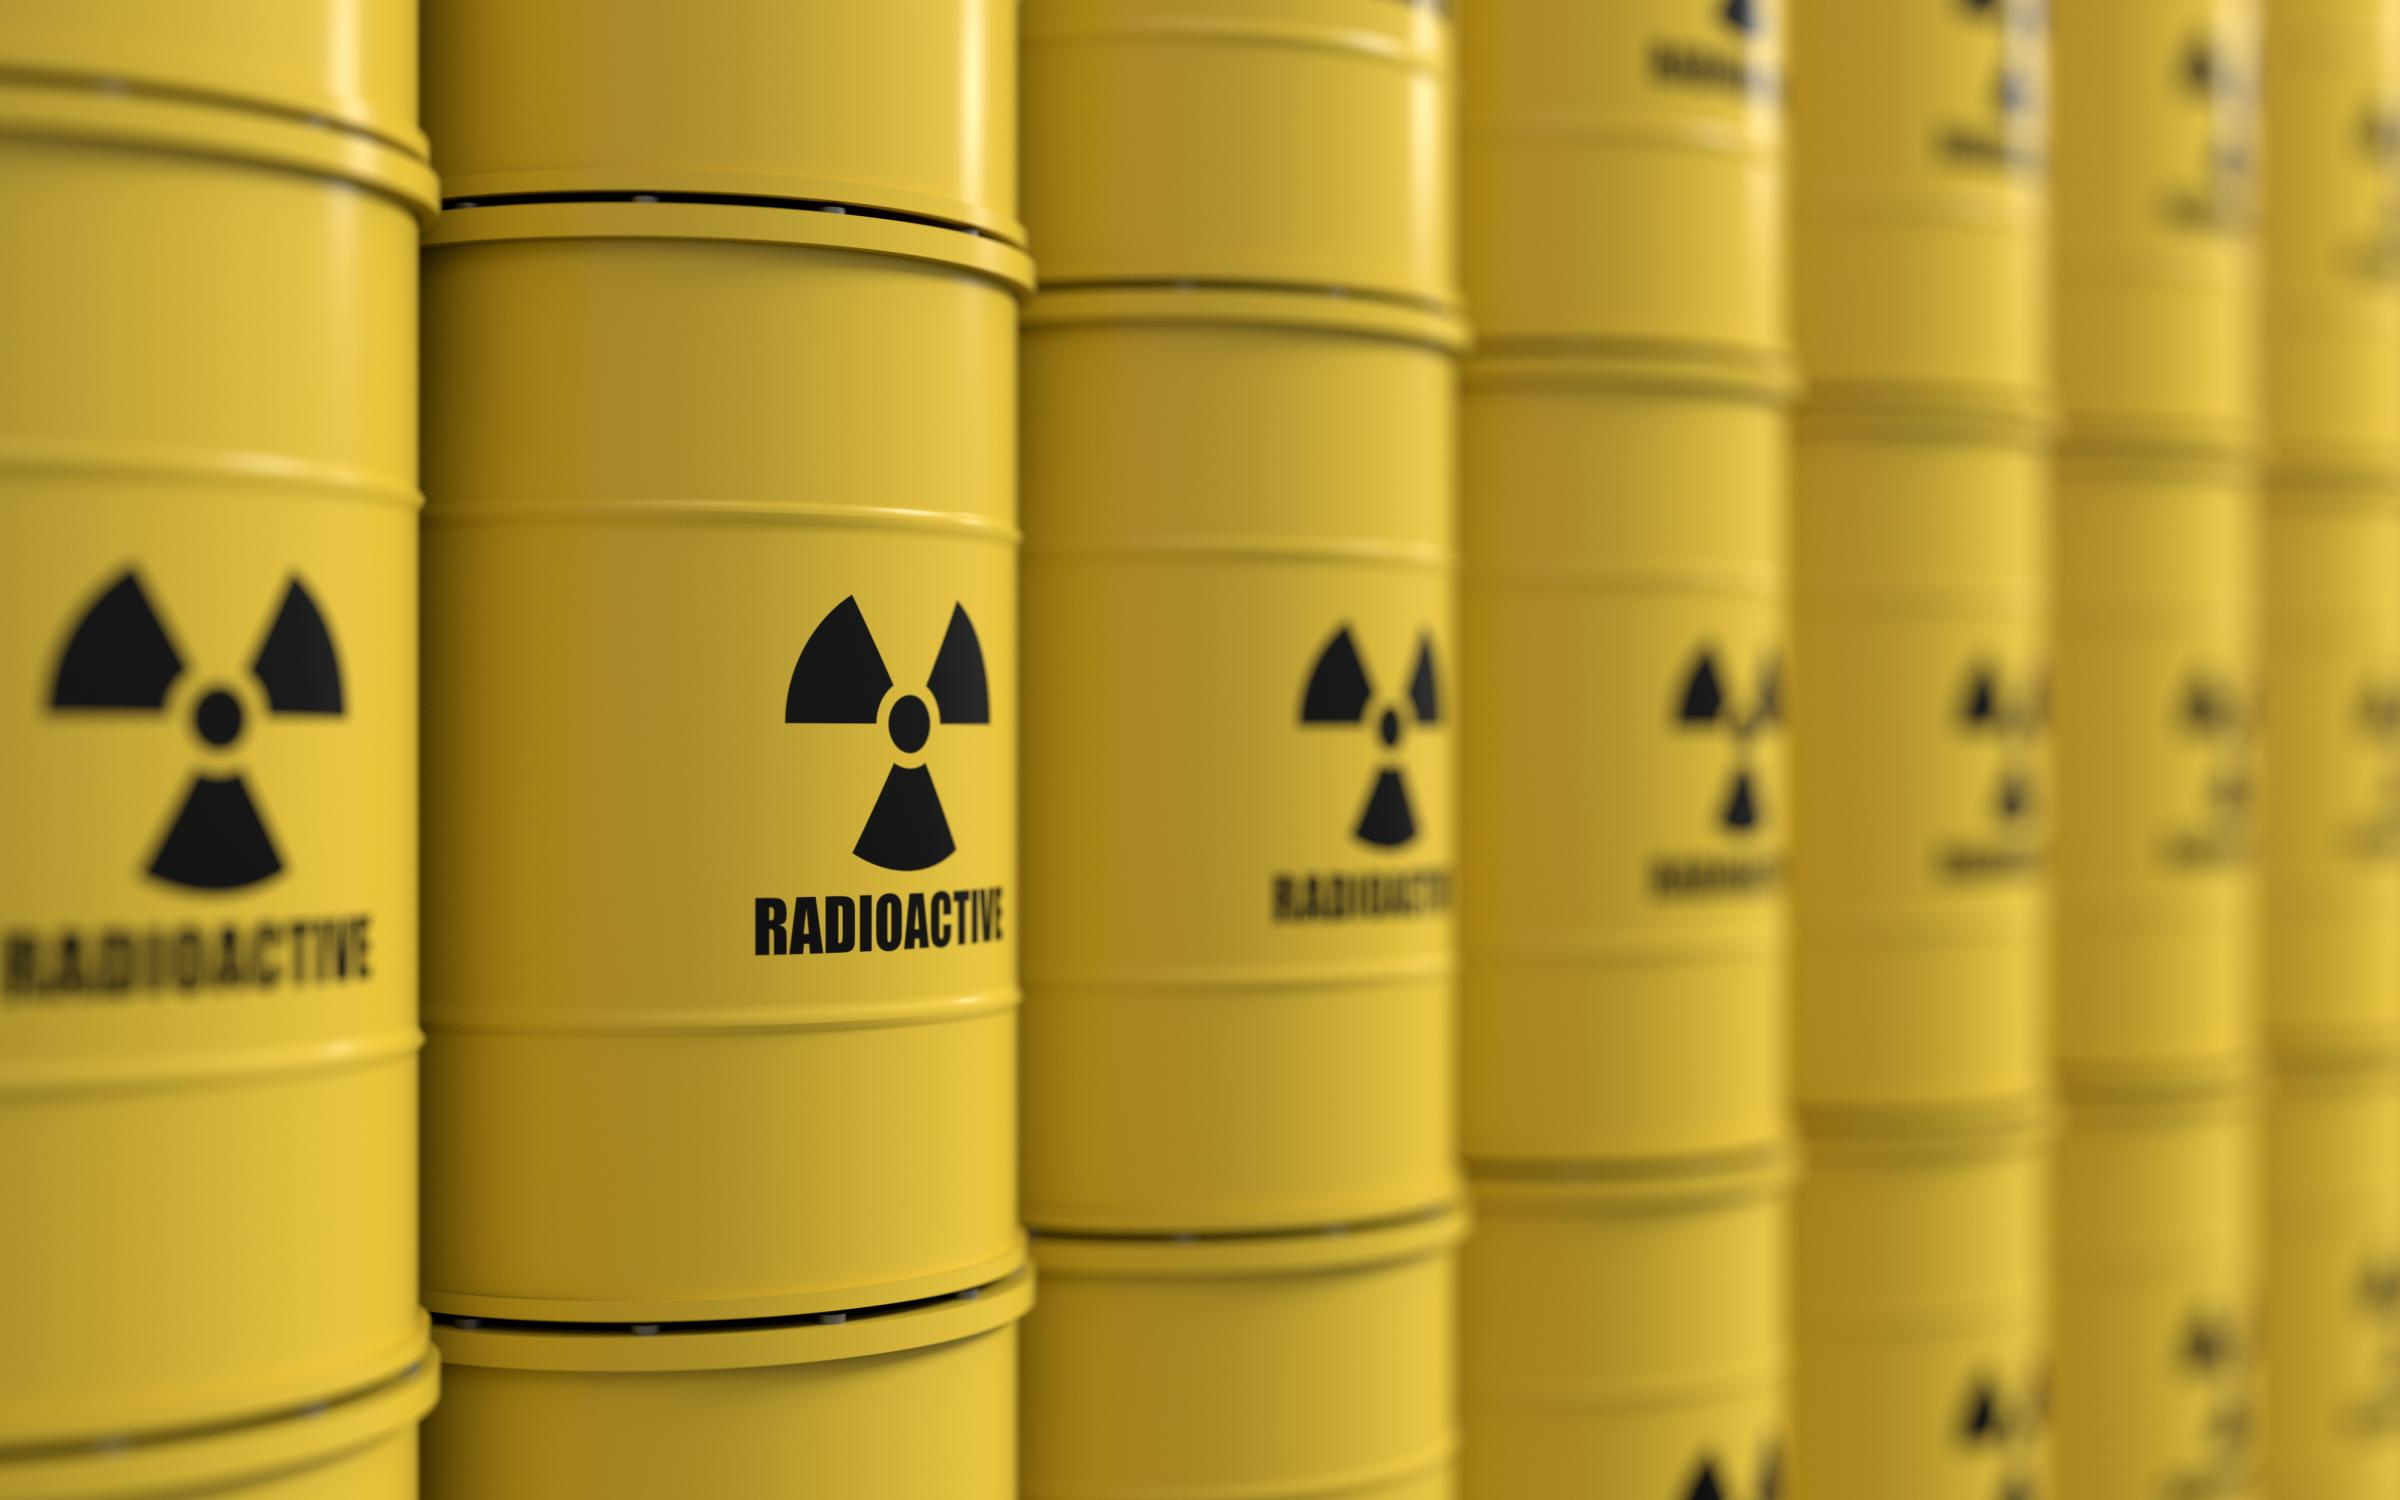 The Government is seeking people's views on a respository for radioactive waste